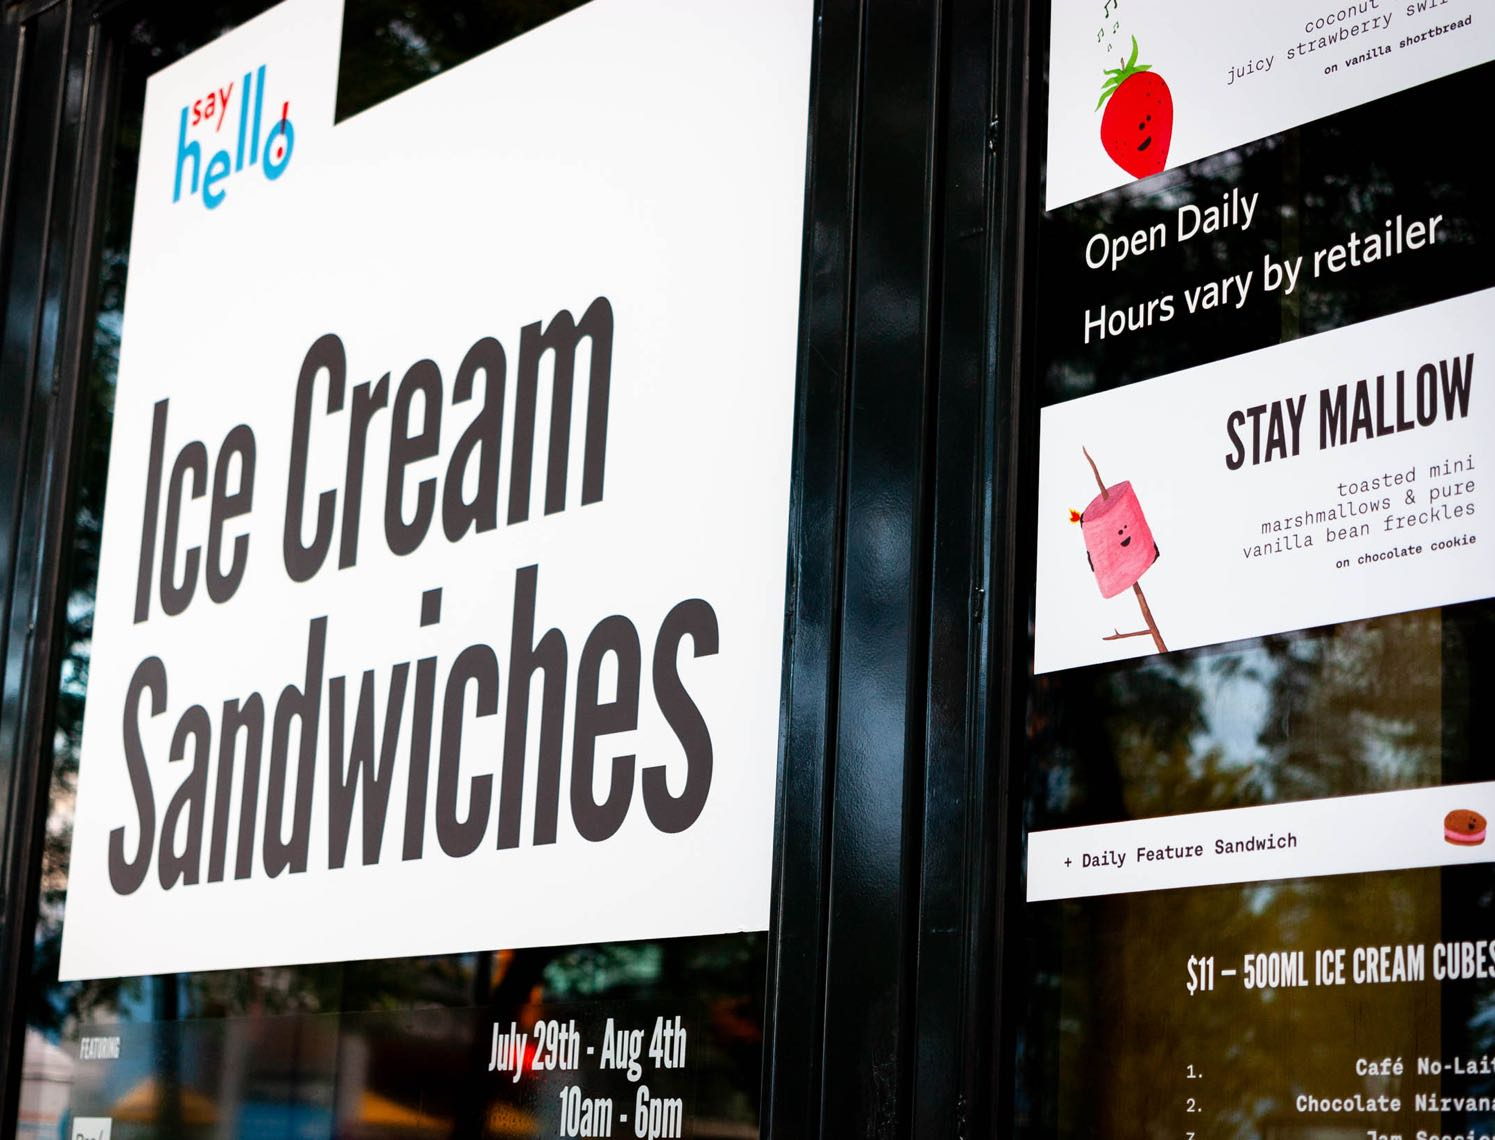 Close up of Say Hello Sweets Store windows advertising ice cream sandwiches — by Dima.